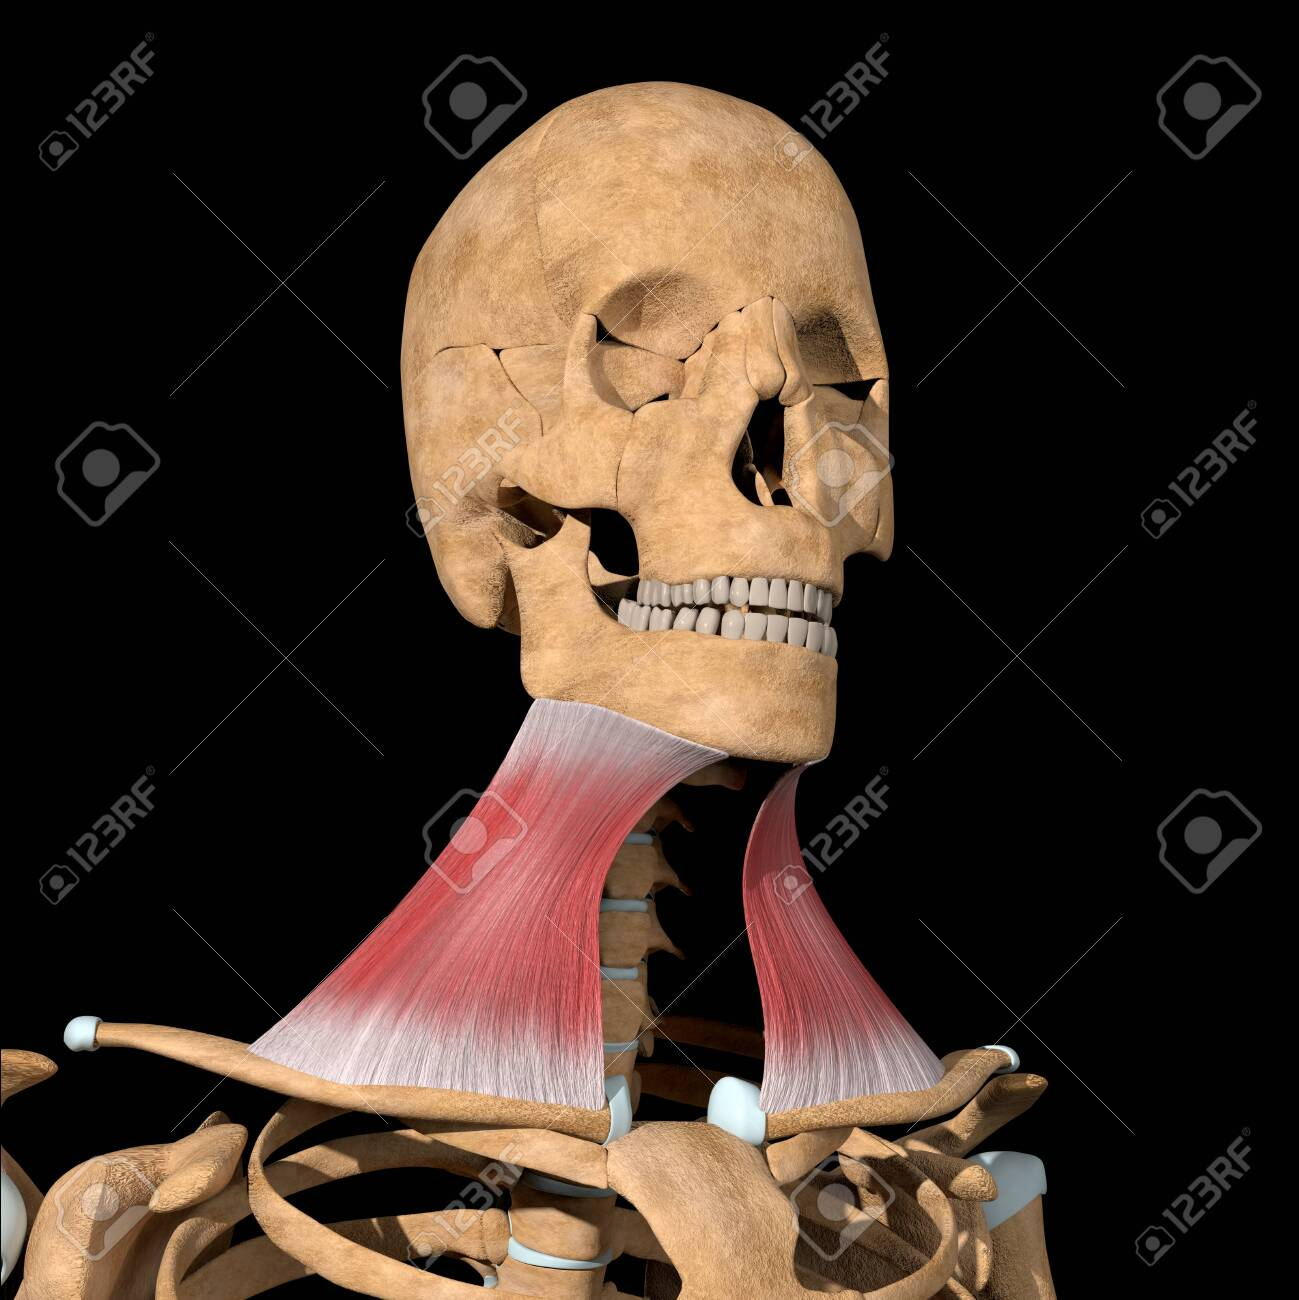 This 3d illustration shows the platysma muscles on skeleton - 141583268